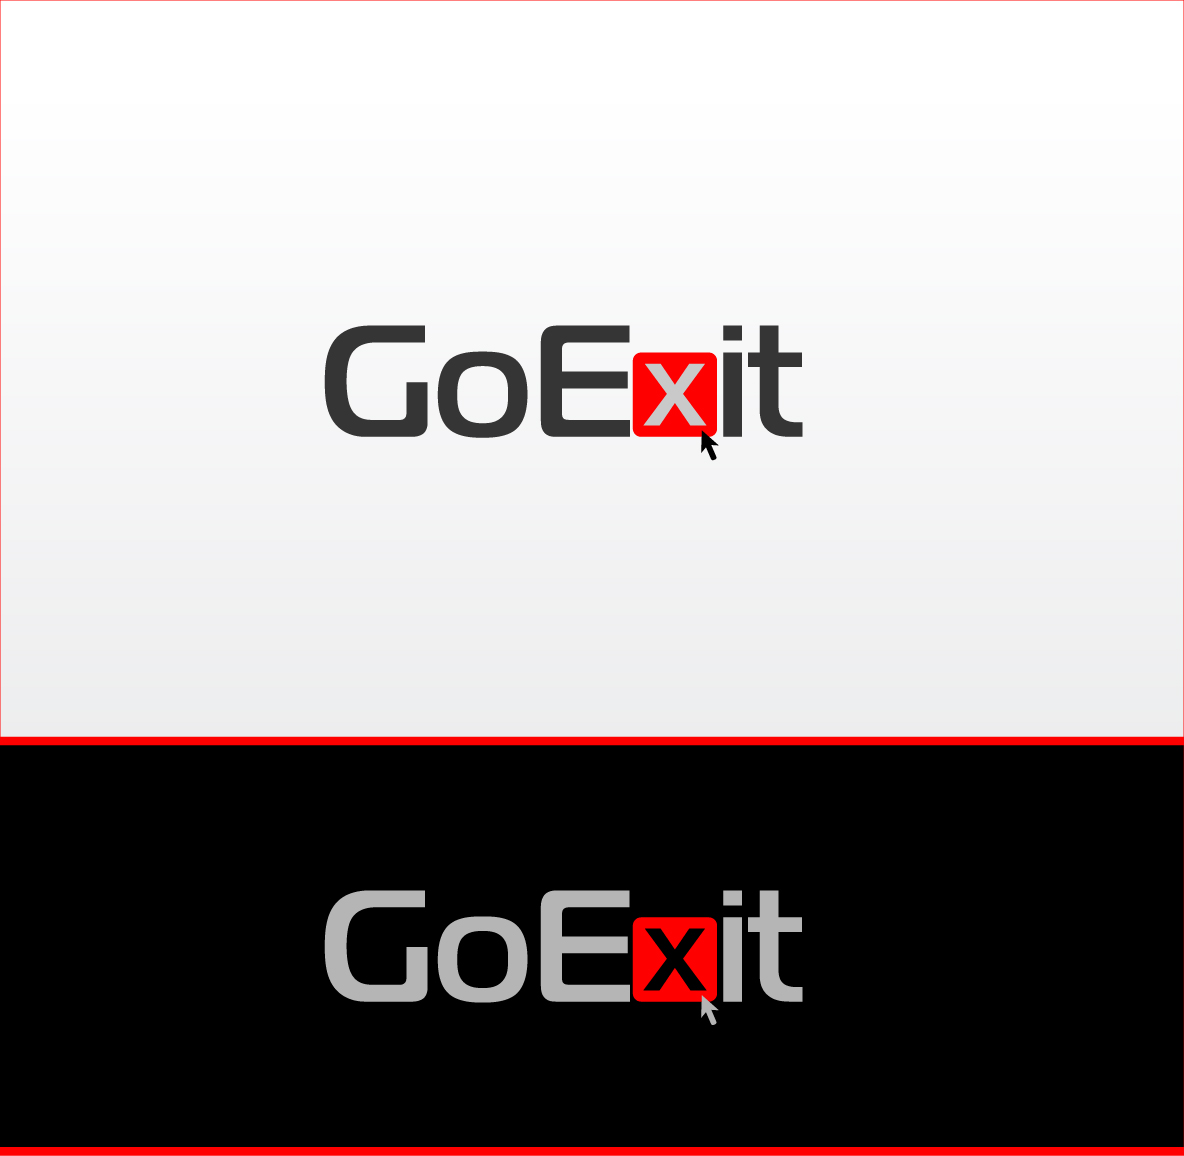 Logo Design by zoiDesign - Entry No. 25 in the Logo Design Contest GoExit Logo Design.